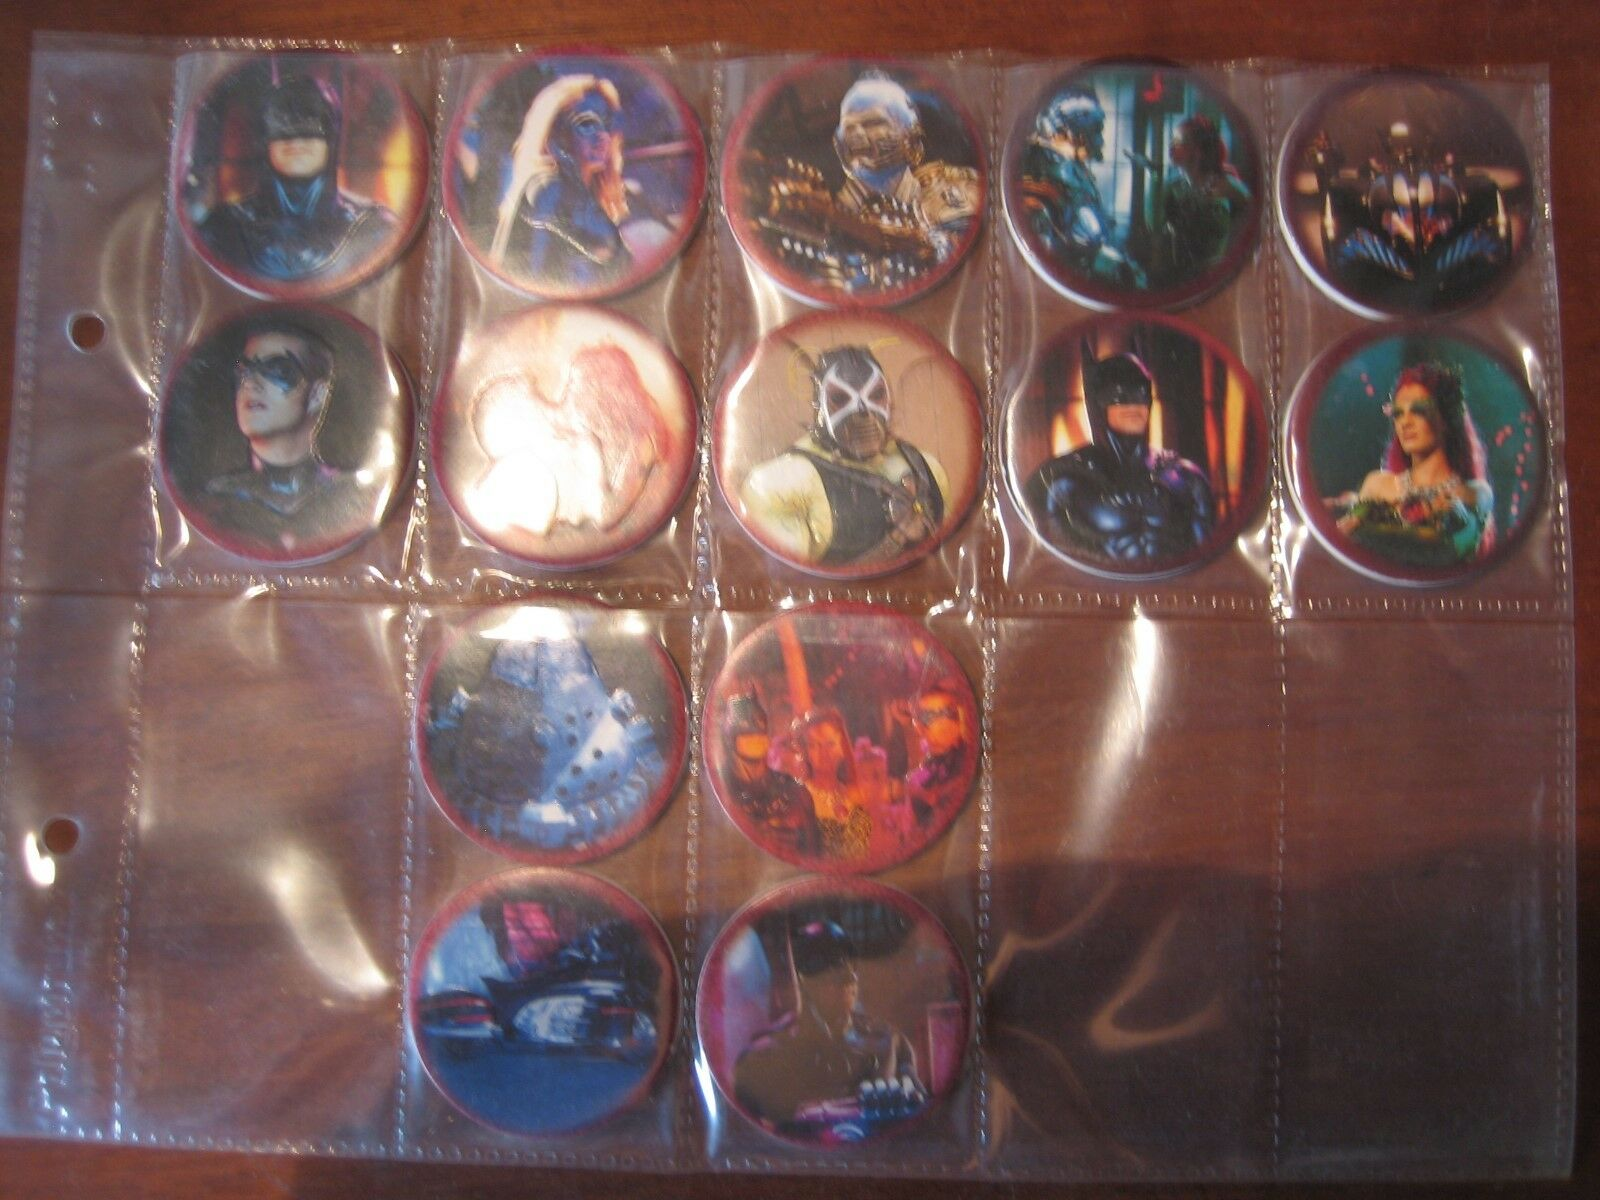 A vintage job lot of 14 X pogs tm &1997 dc comic pogs